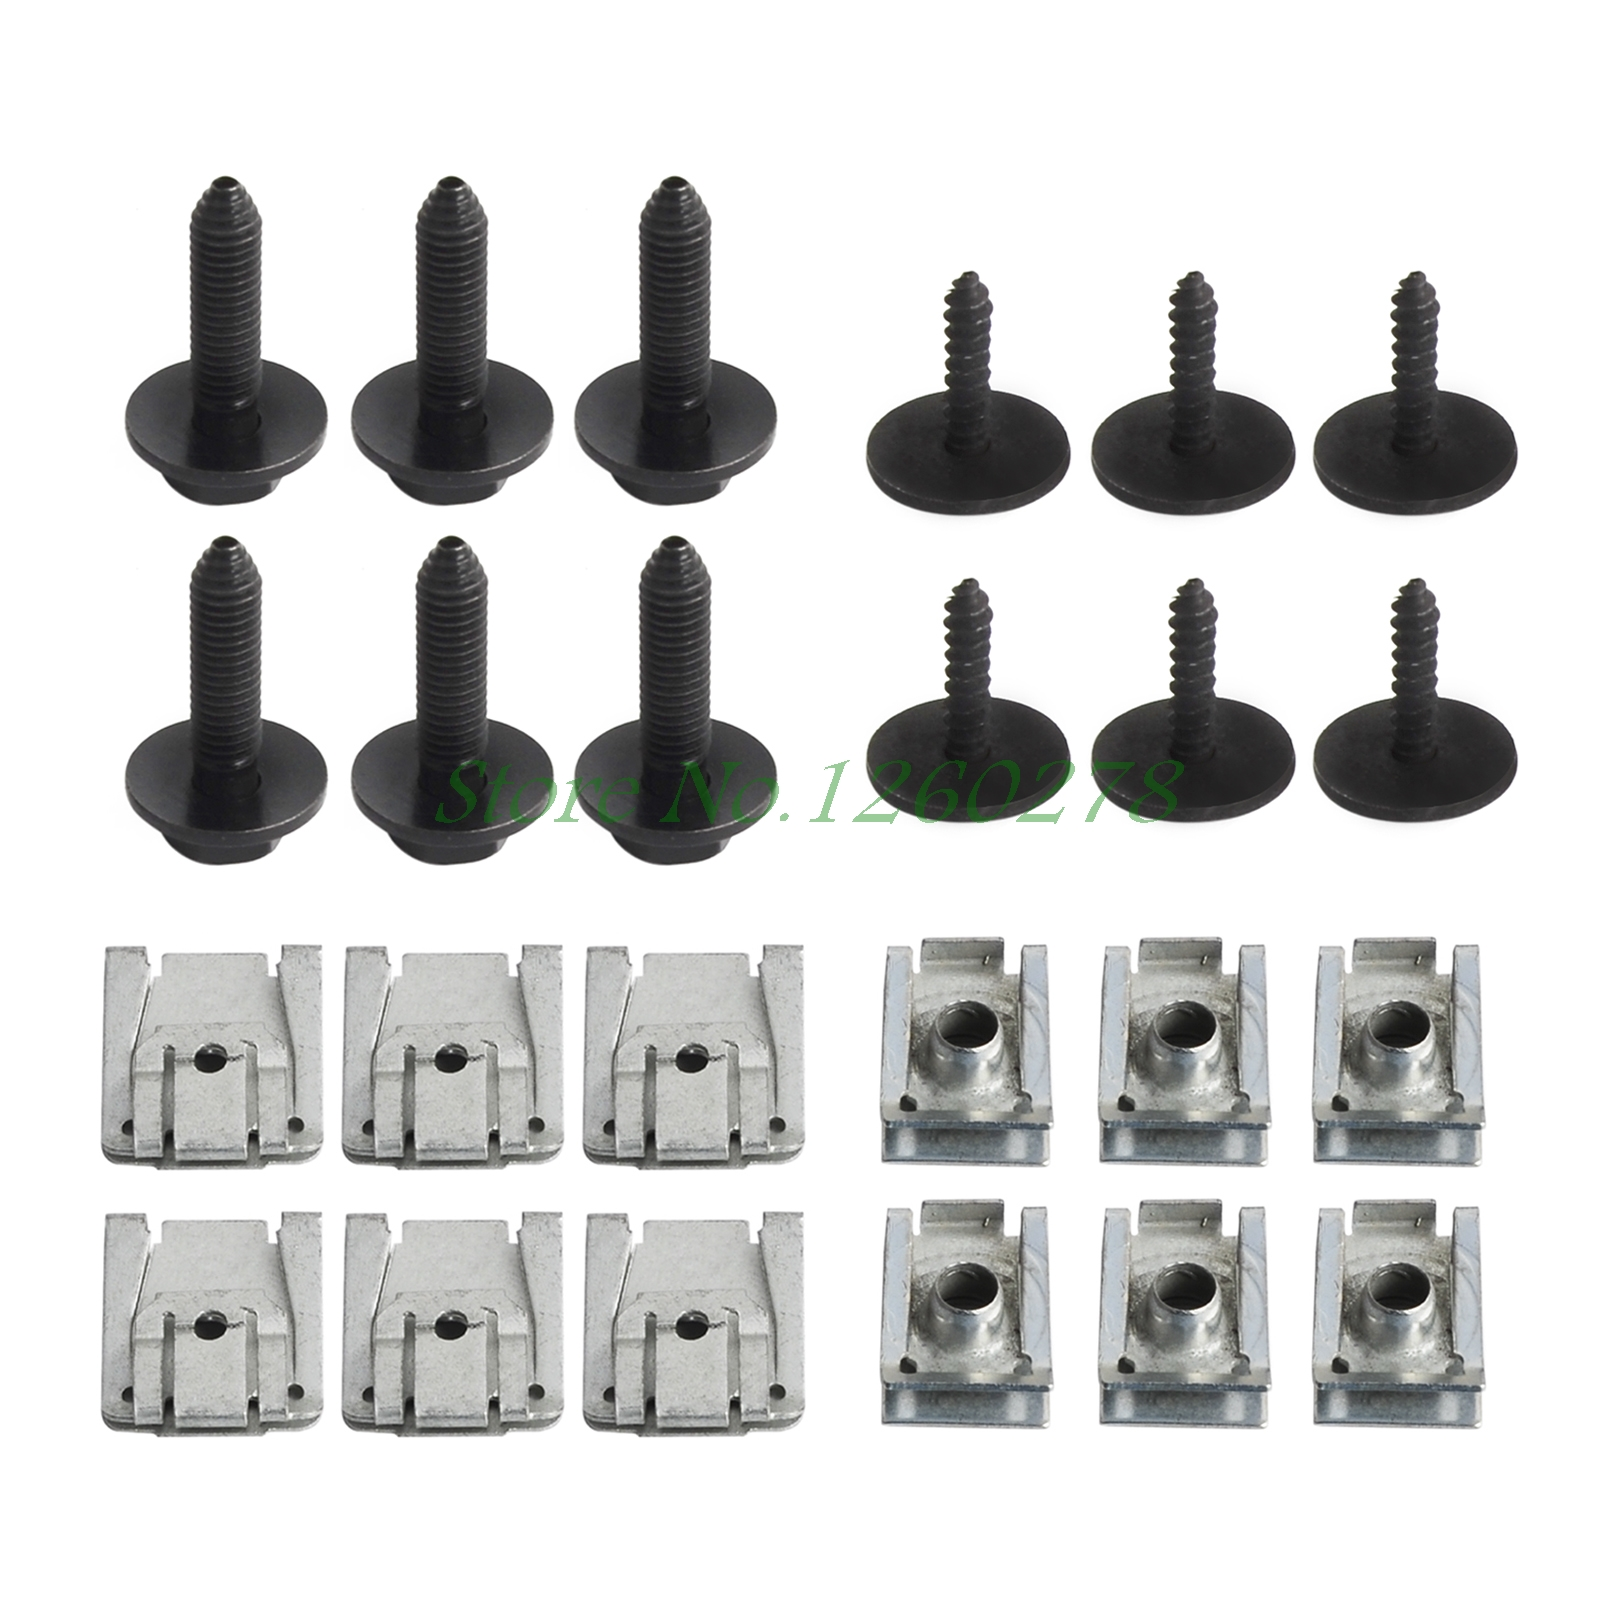 Engine Undertray/Under Cover Clips Screws For Mercedes-Benz C-Class W203 W204 CL203 T-Model S203 S204